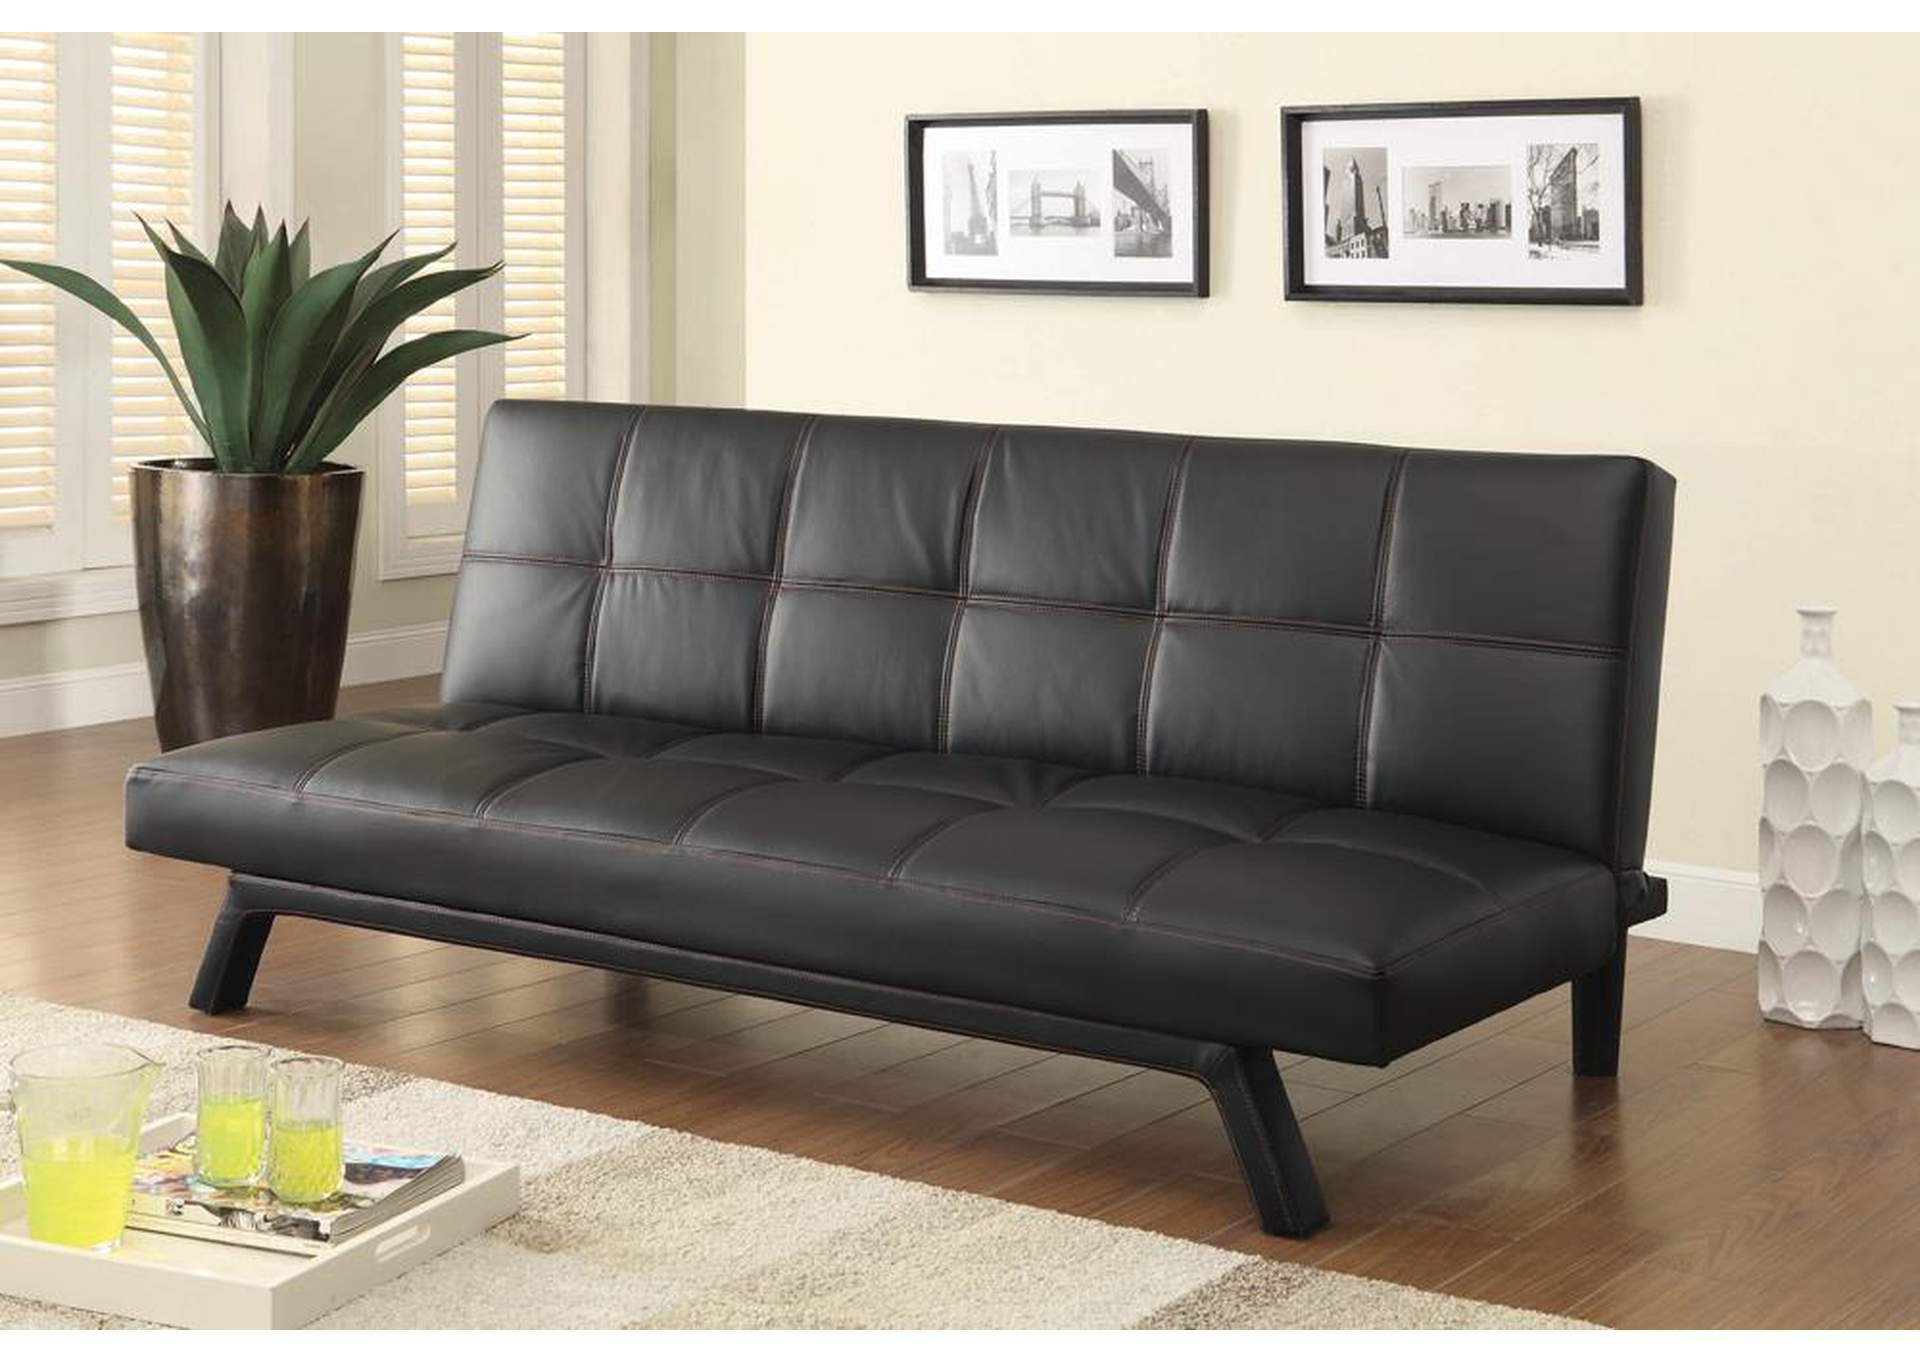 Home Stars Furniture Black Sofa Bed